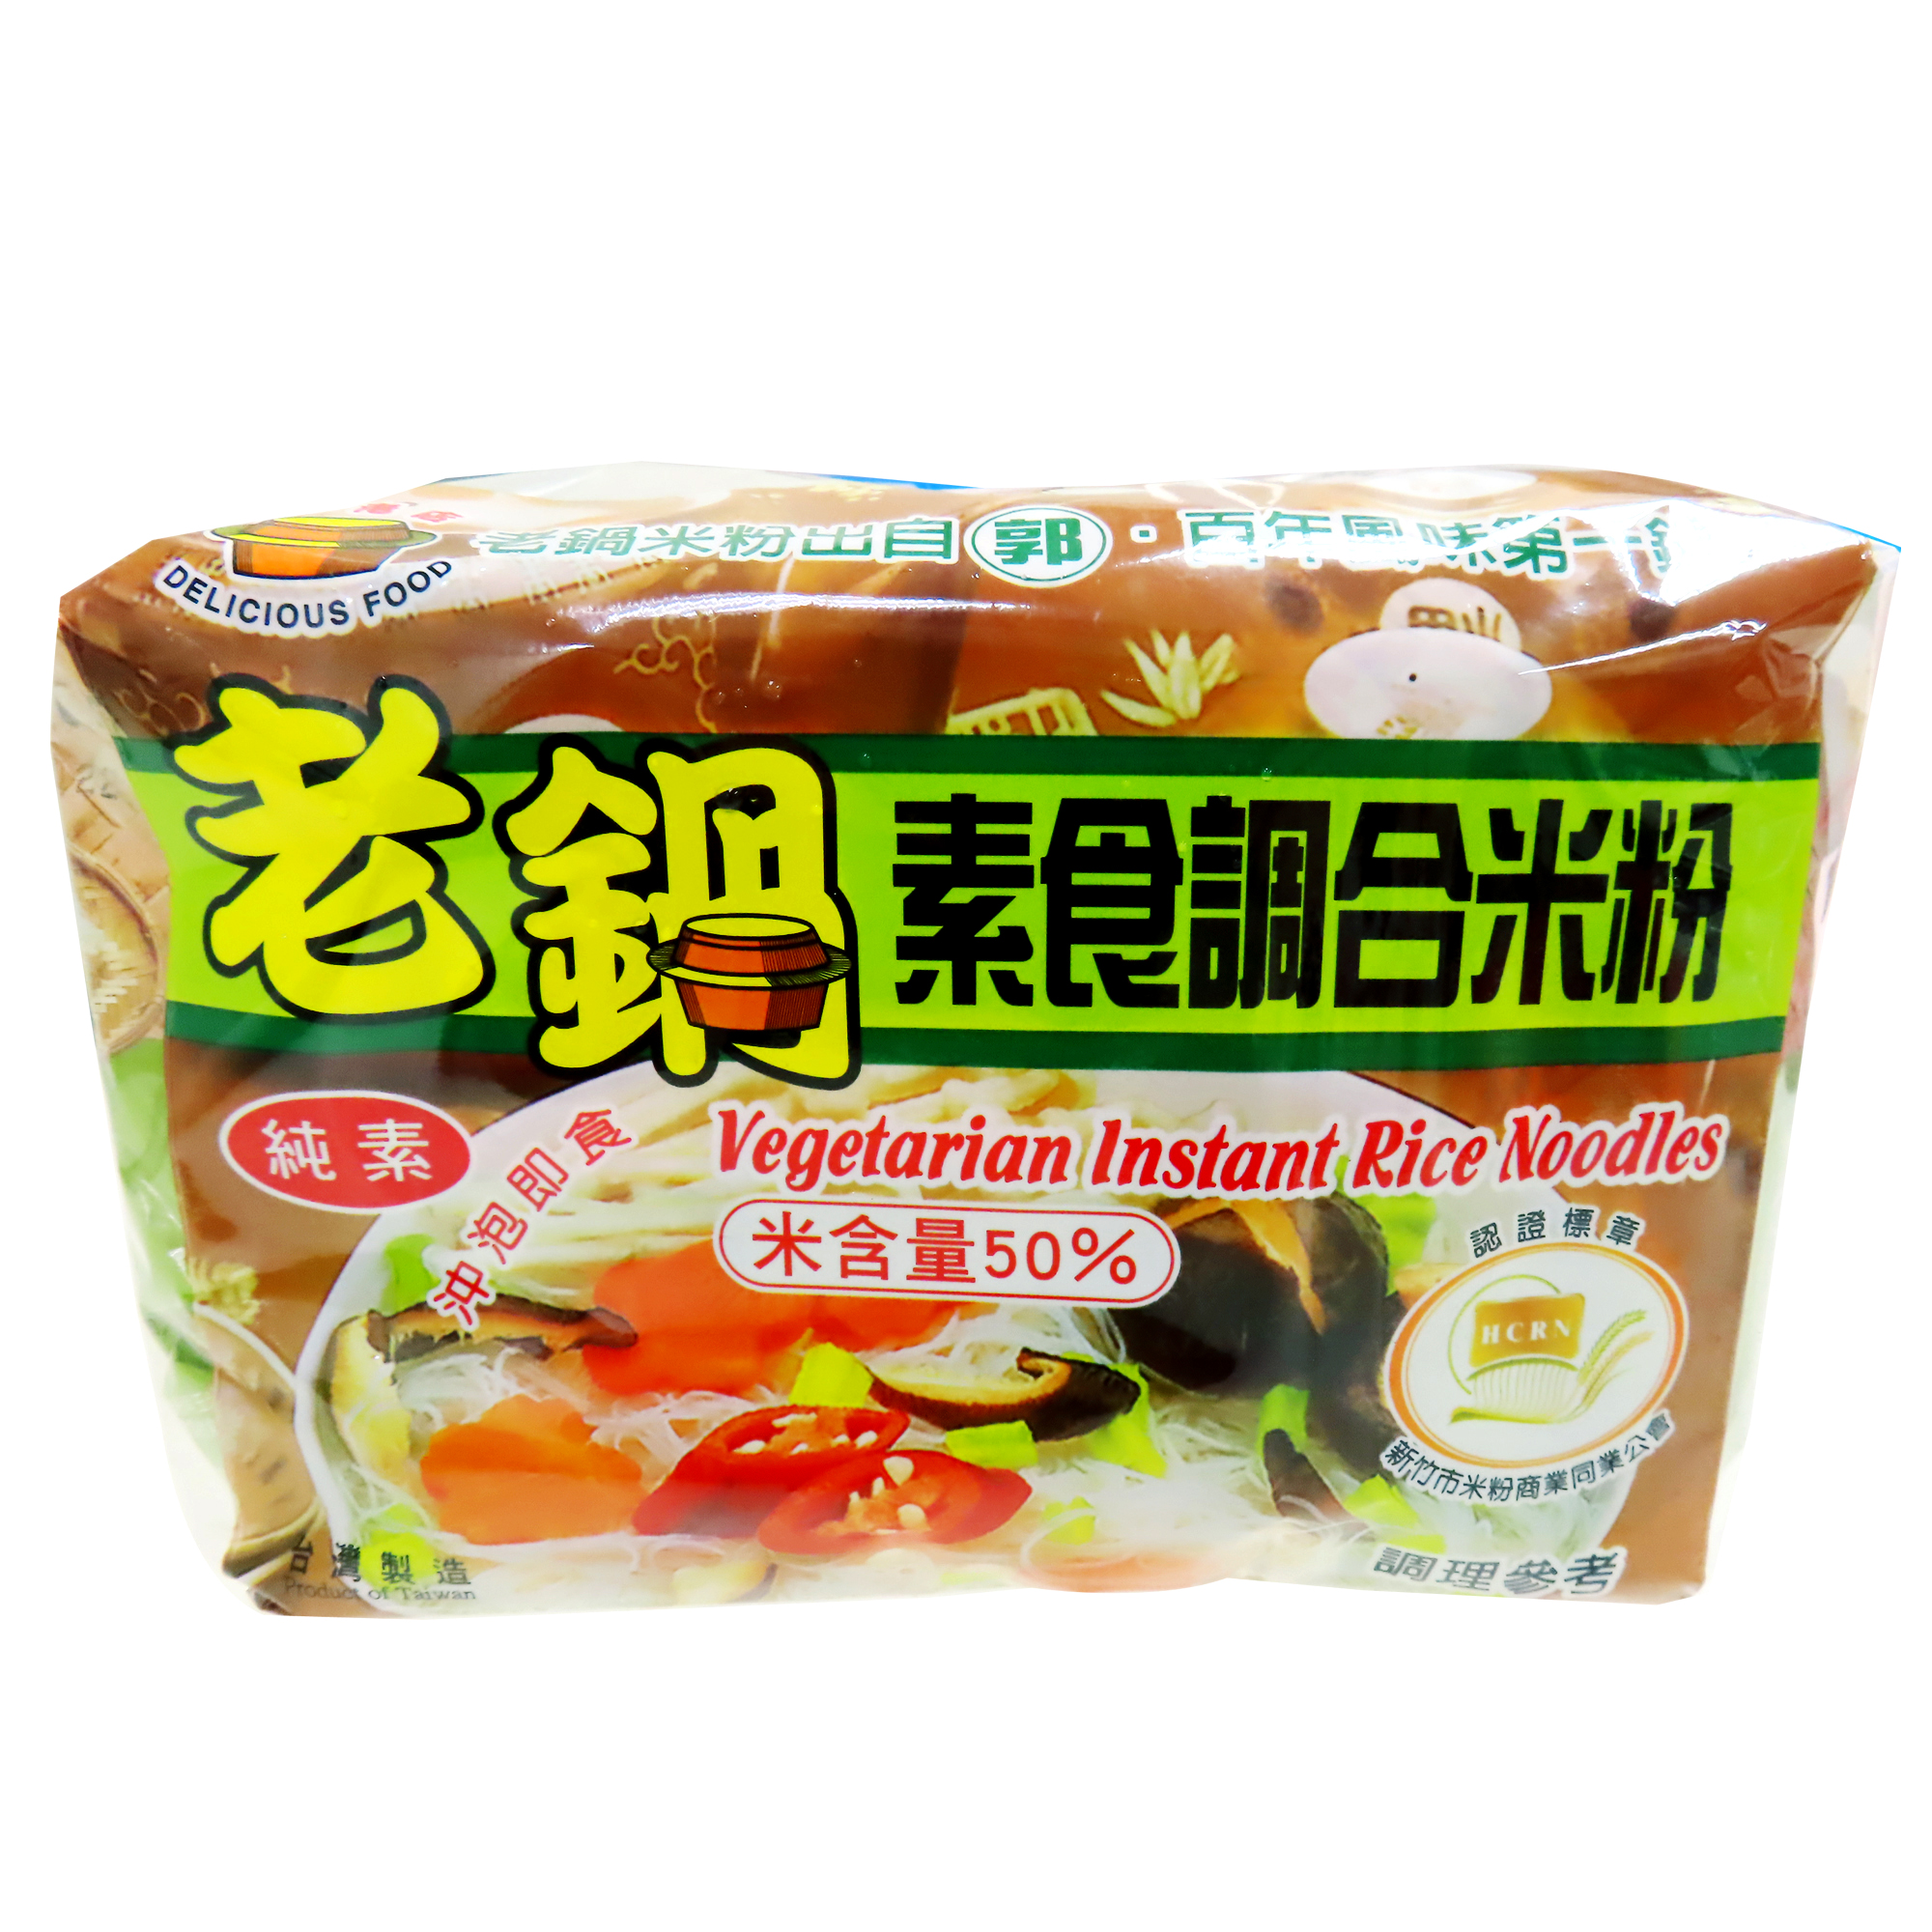 Image Rice Noodle 南兴 - 老锅素食调合米粉 (5packets) 325grams